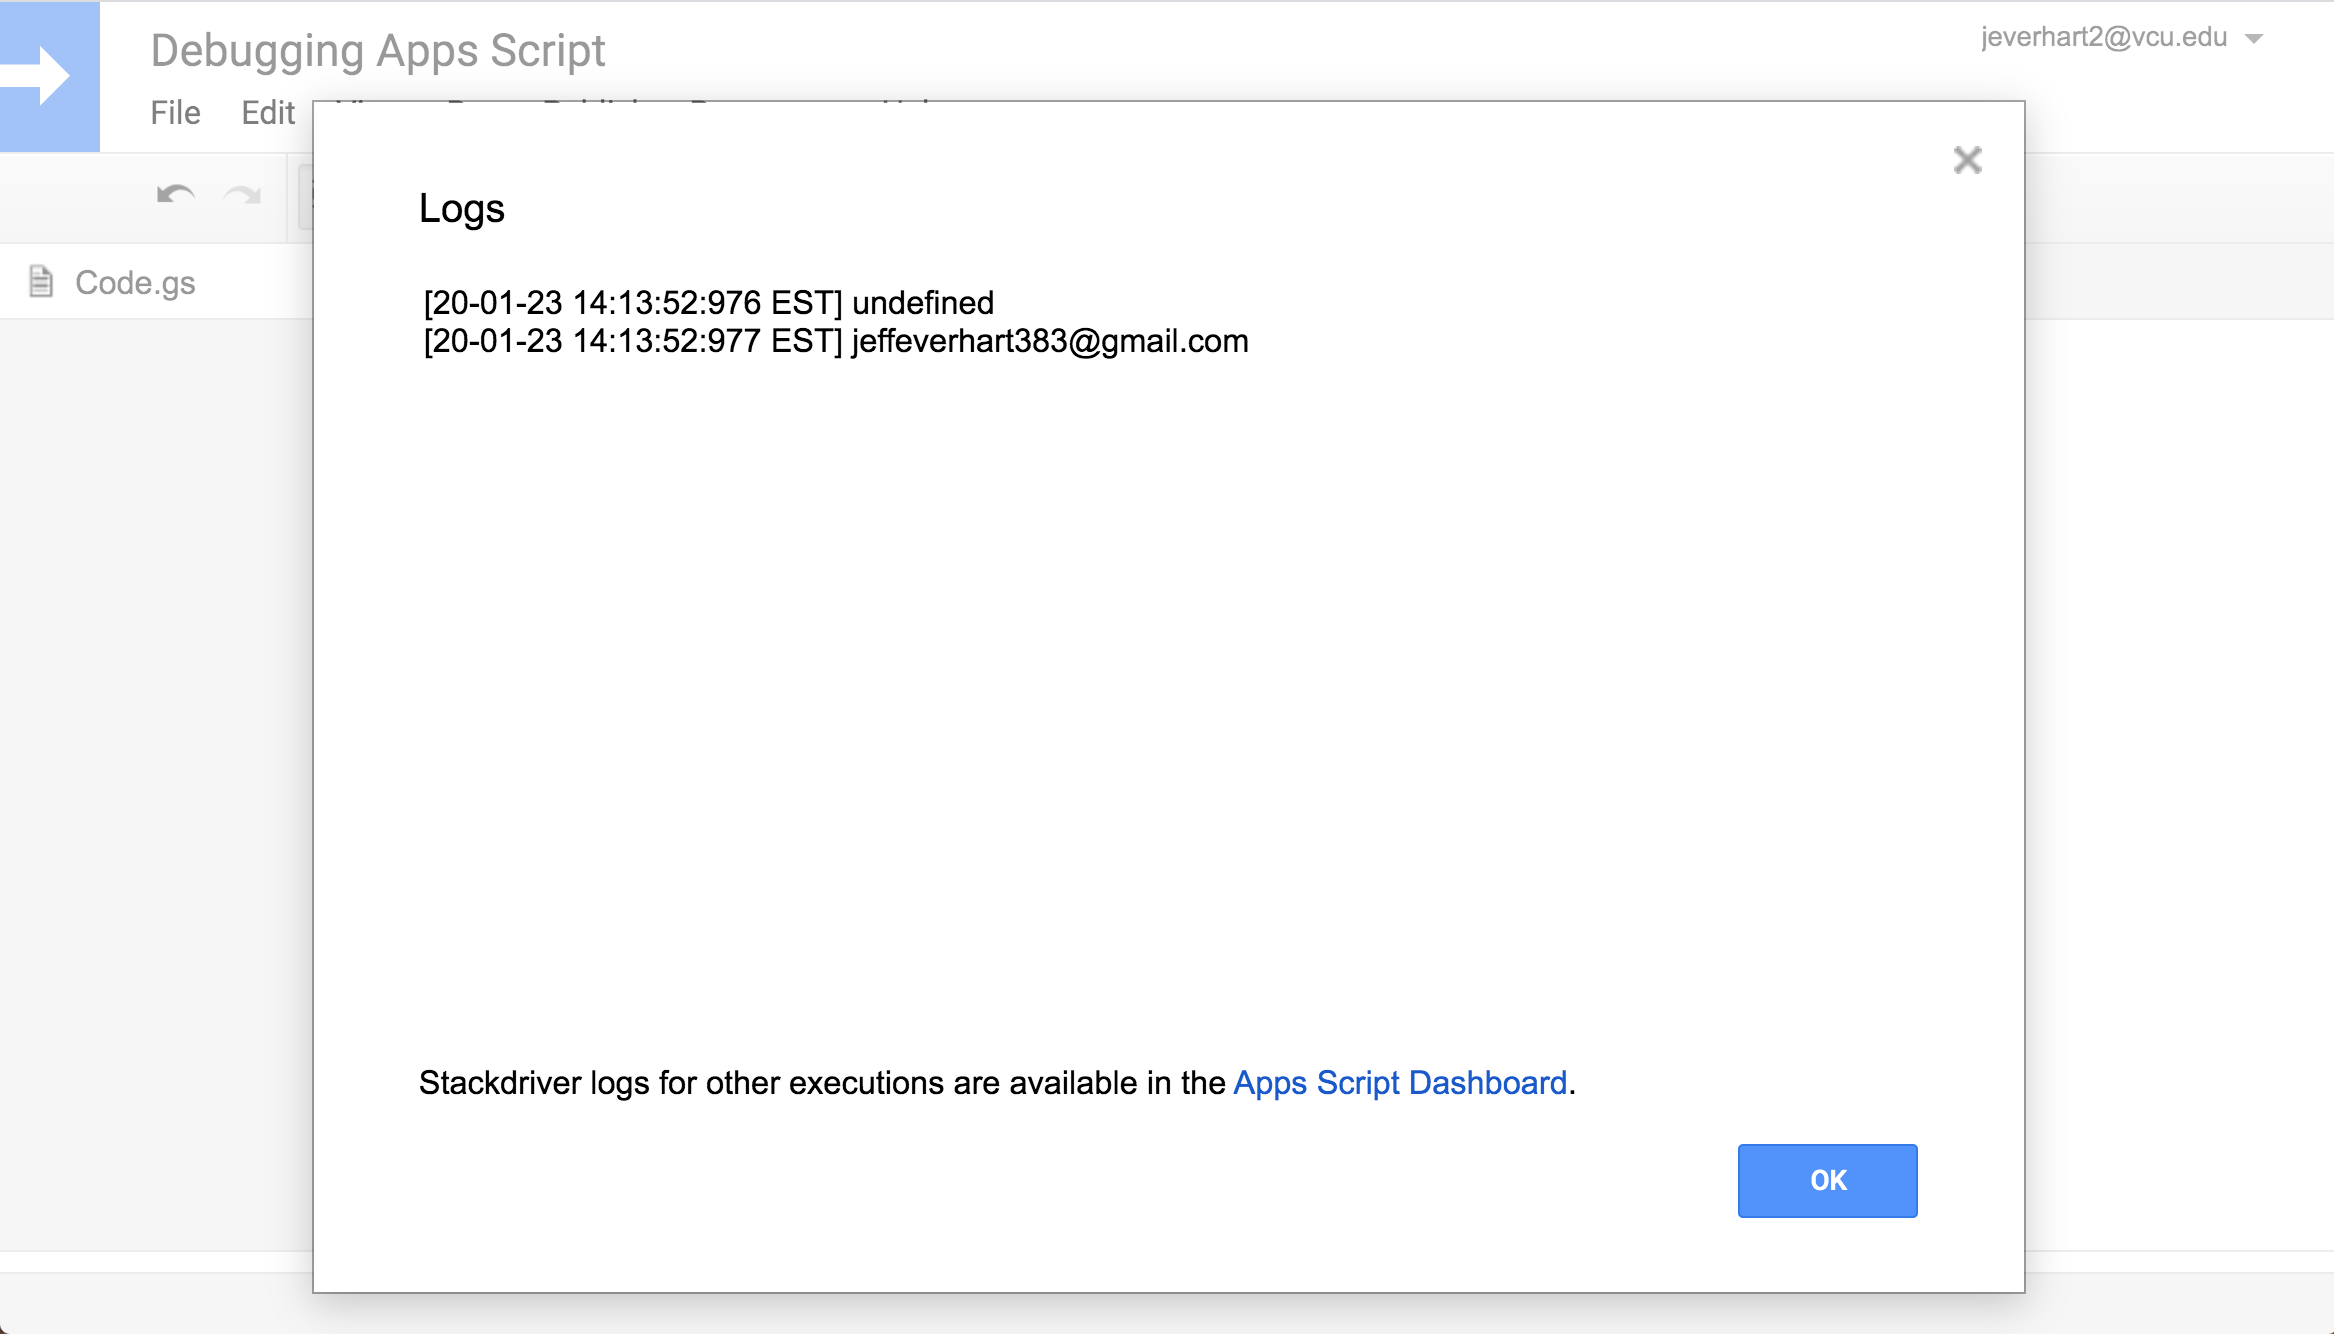 A screenshot showing the logging output modal in Google Apps Script code editor